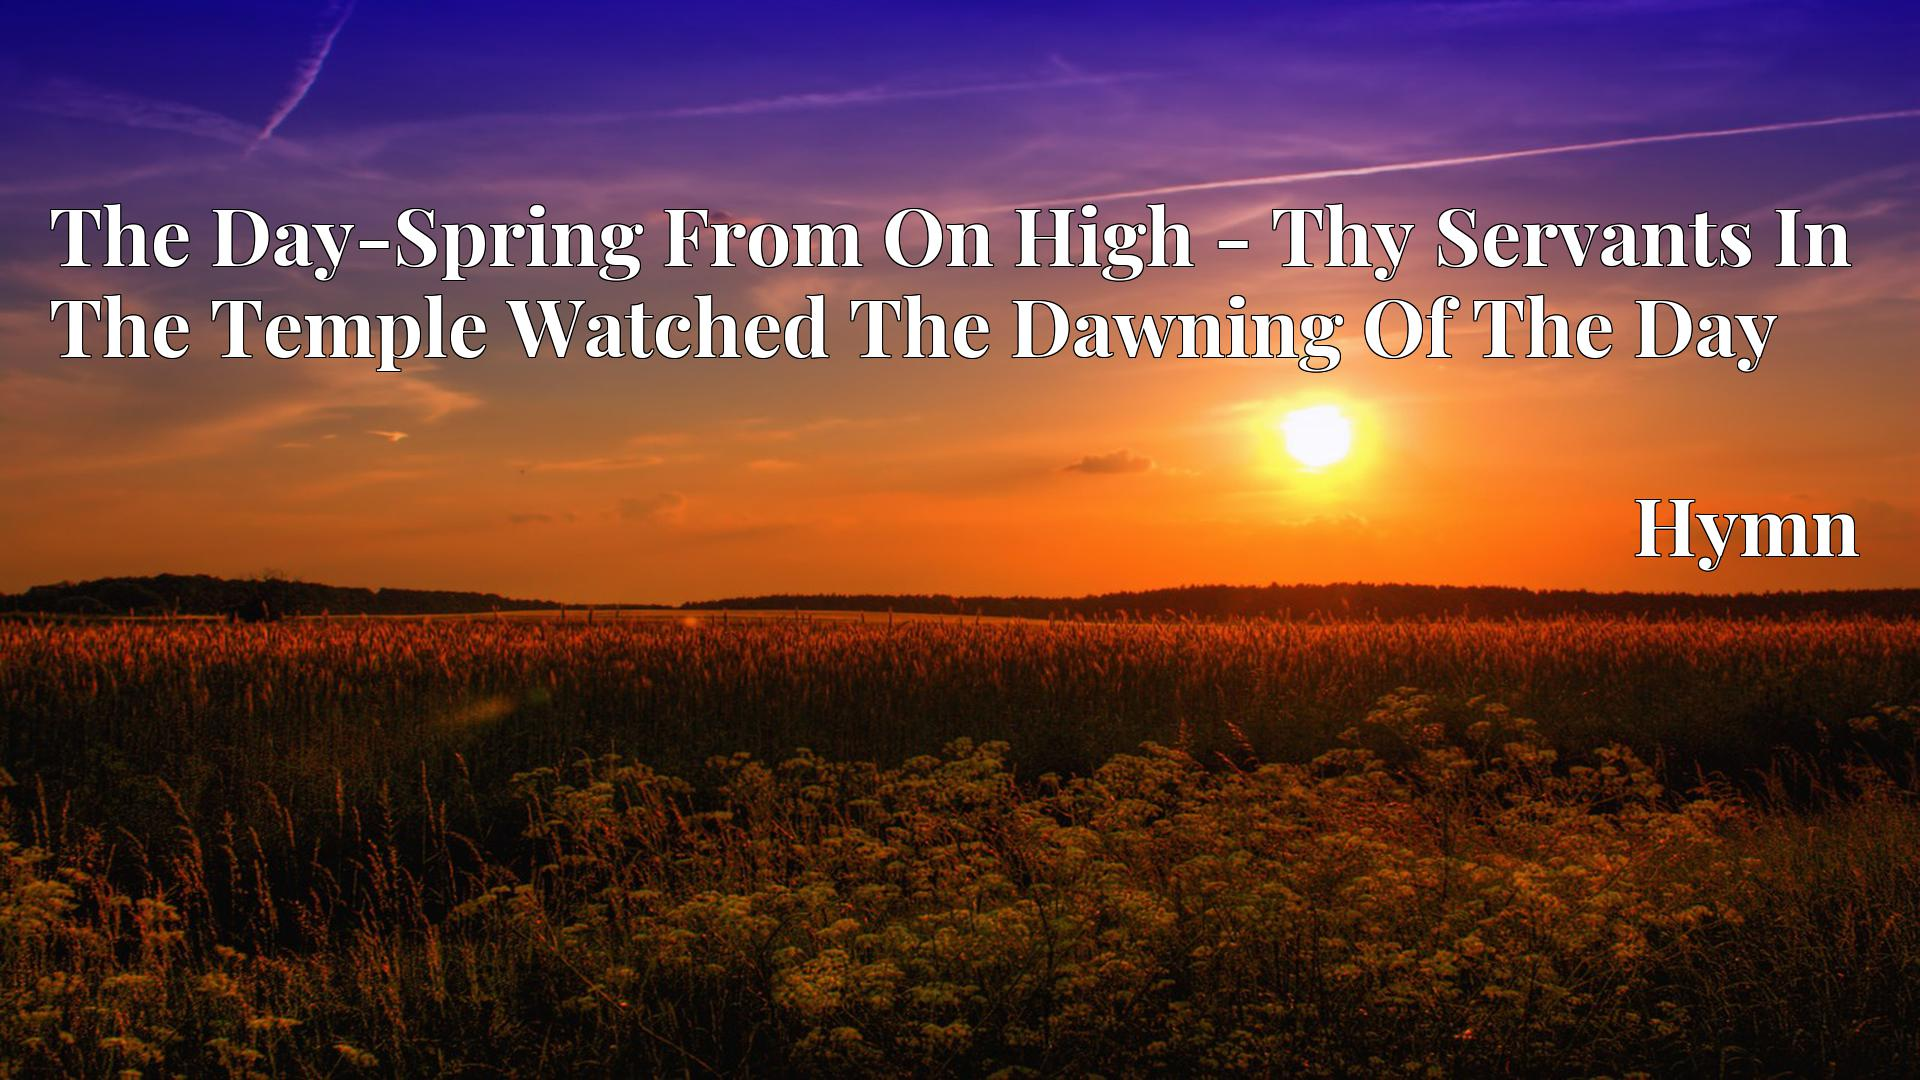 The Day-Spring From On High - Thy Servants In The Temple Watched The Dawning Of The Day - Hymn